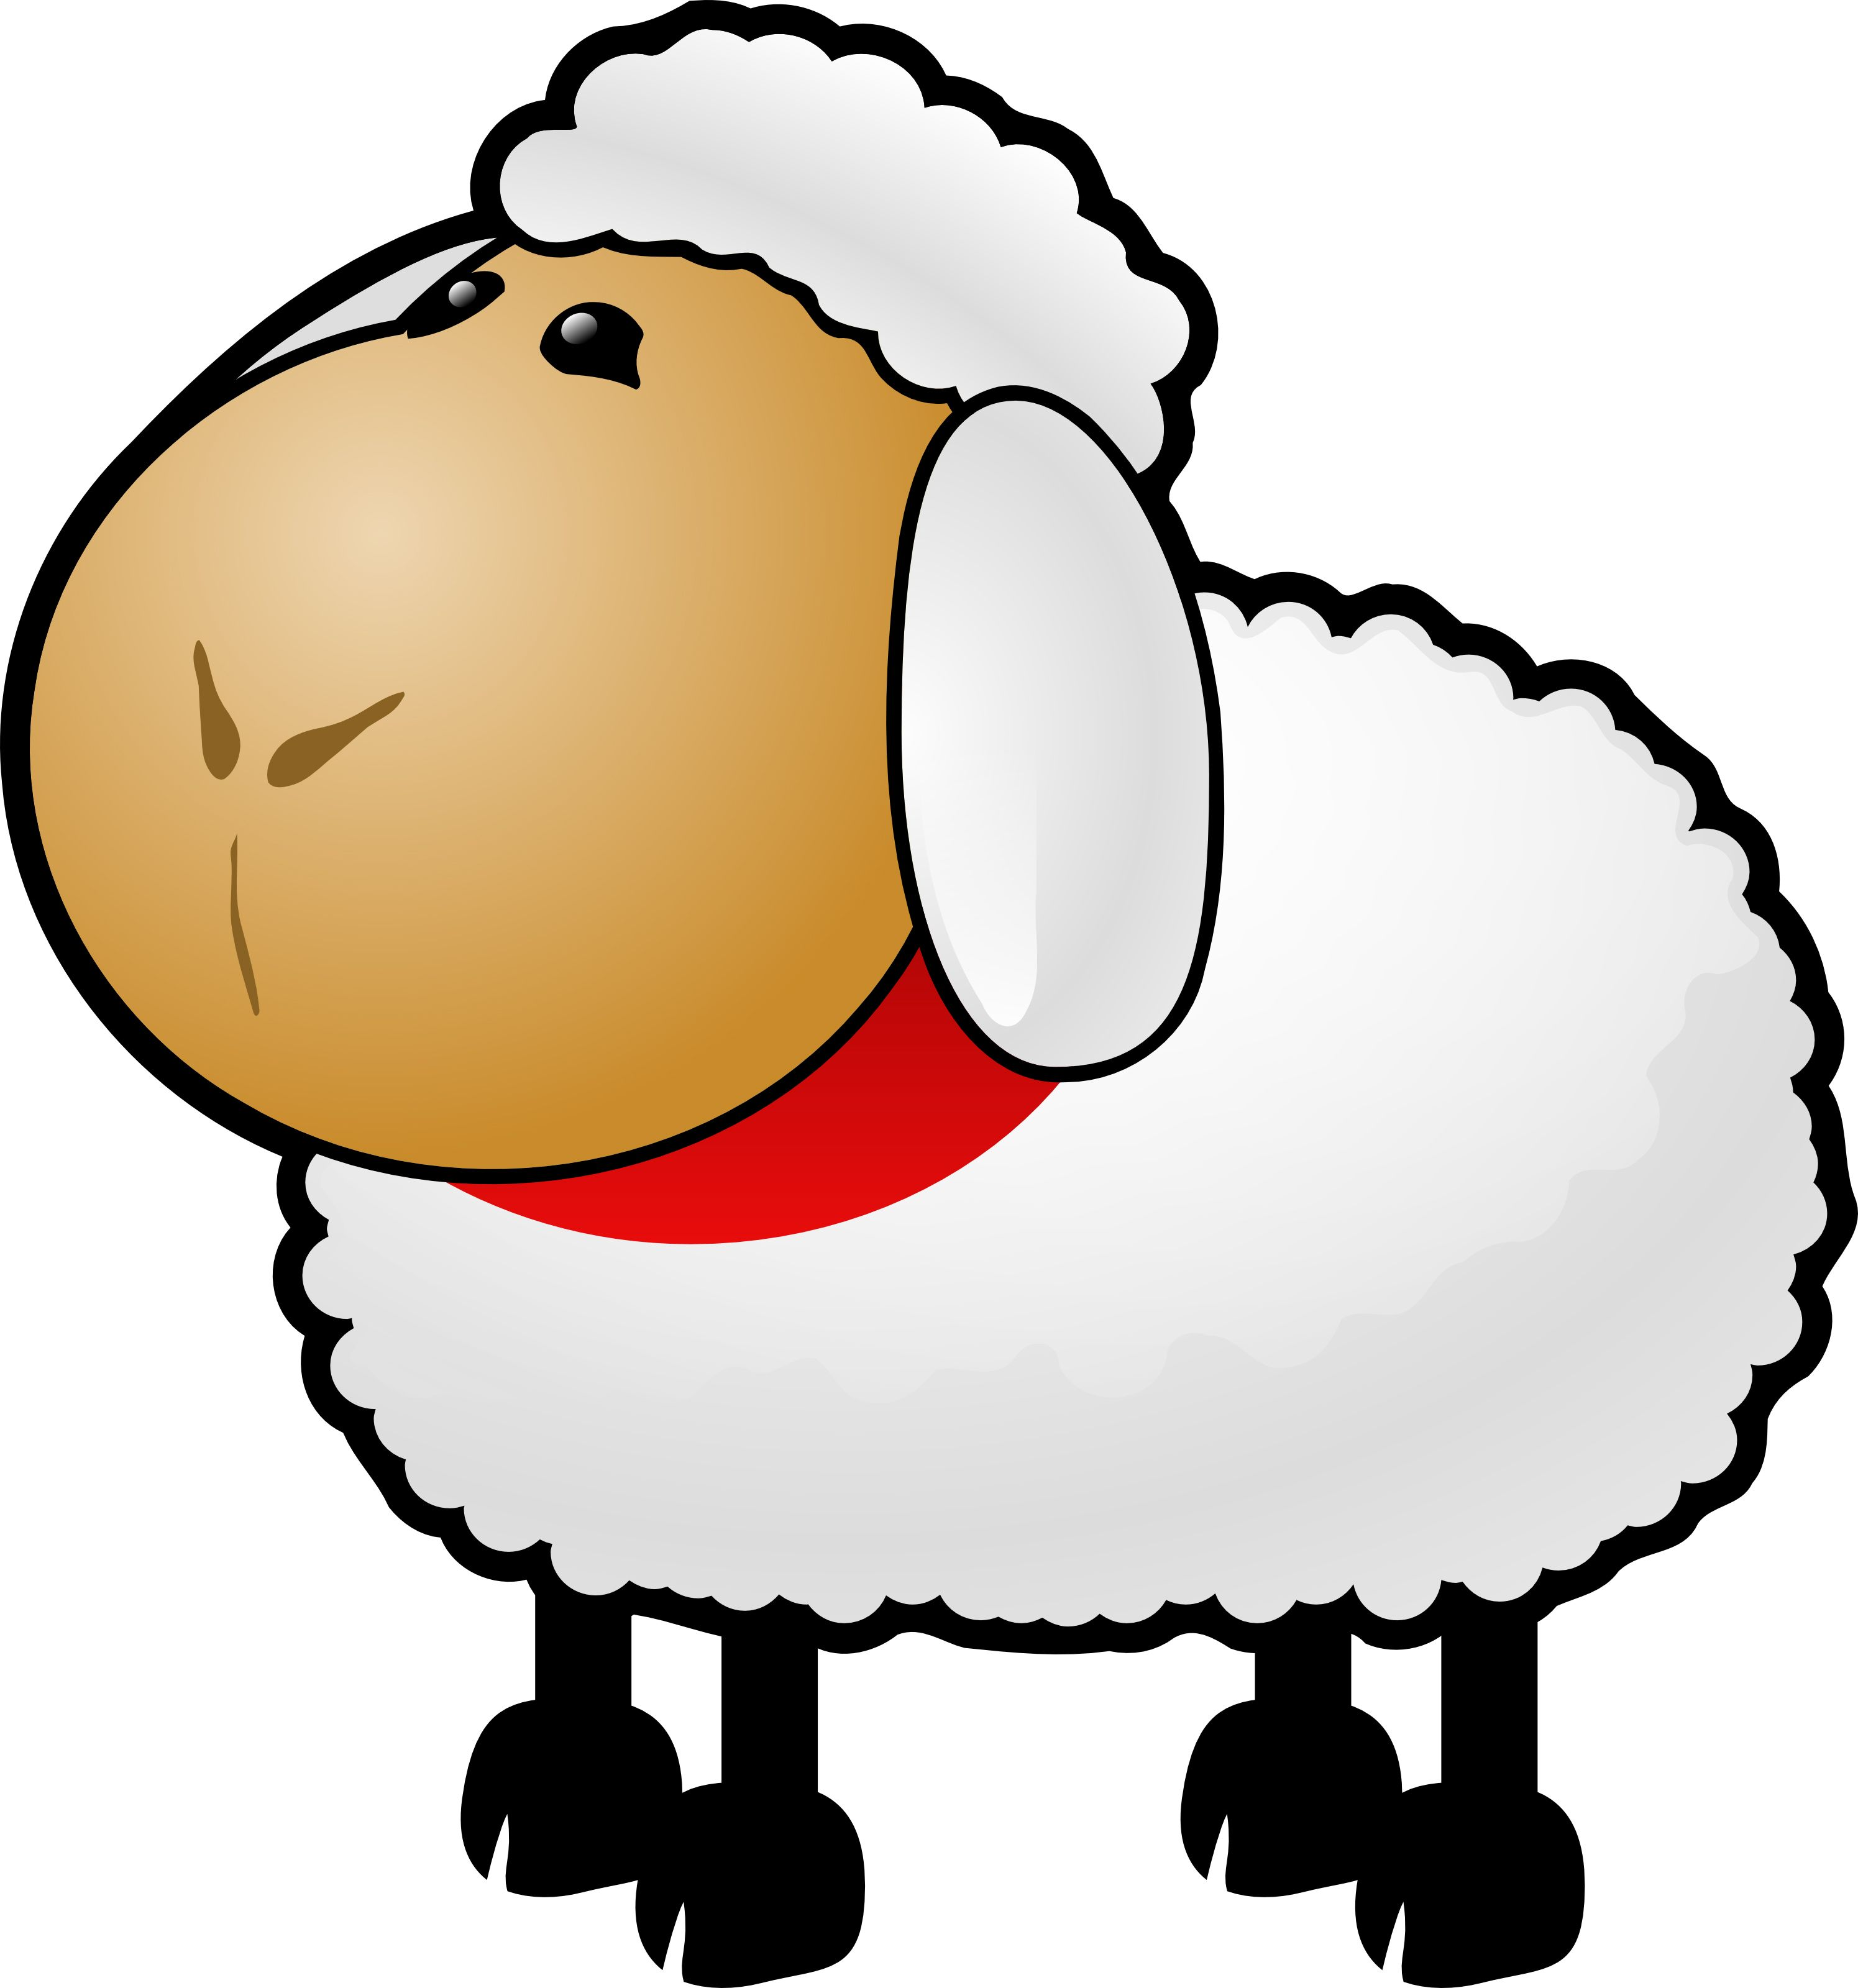 A sheep clipart graphic library stock Free Cartoon Sheep Clipart | овечки | козочки 2015 sheep | goat ... graphic library stock